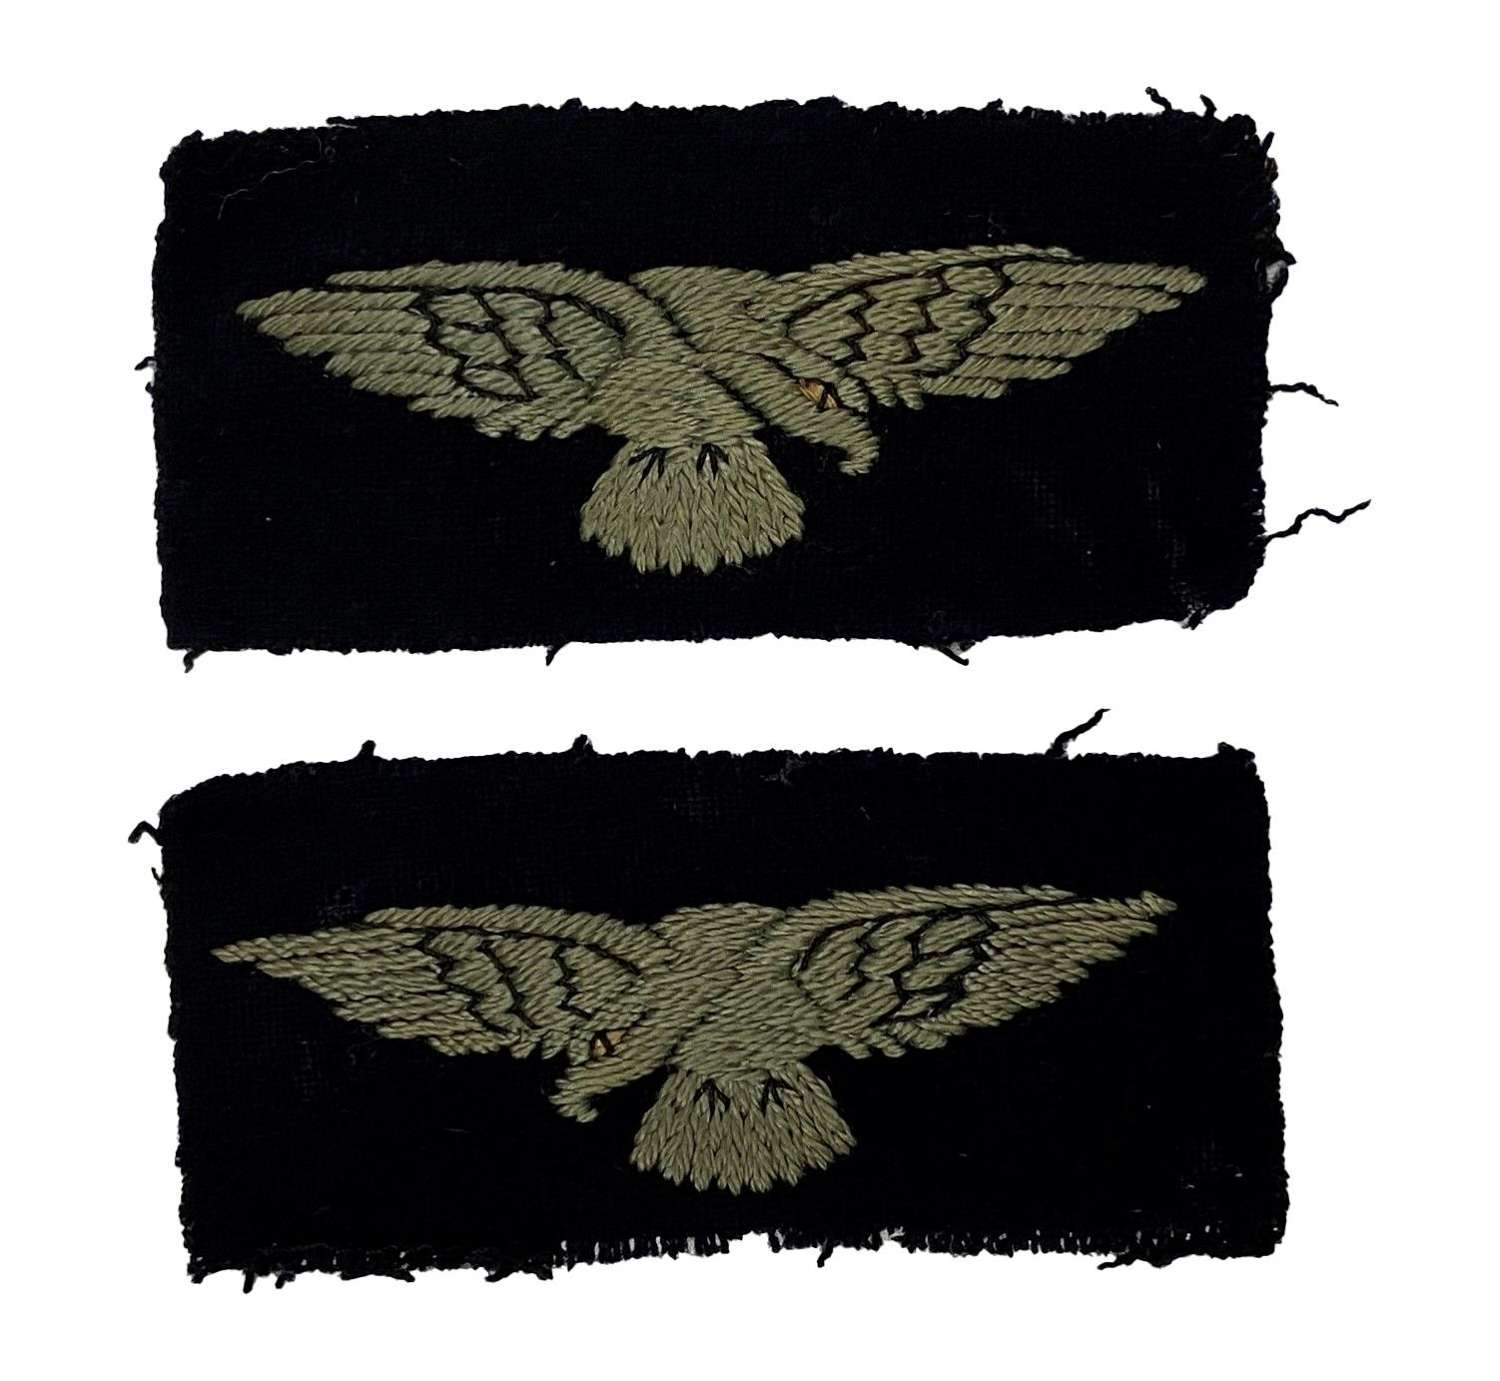 Original Early Battle of Britain Period RAF Eagle Insignia